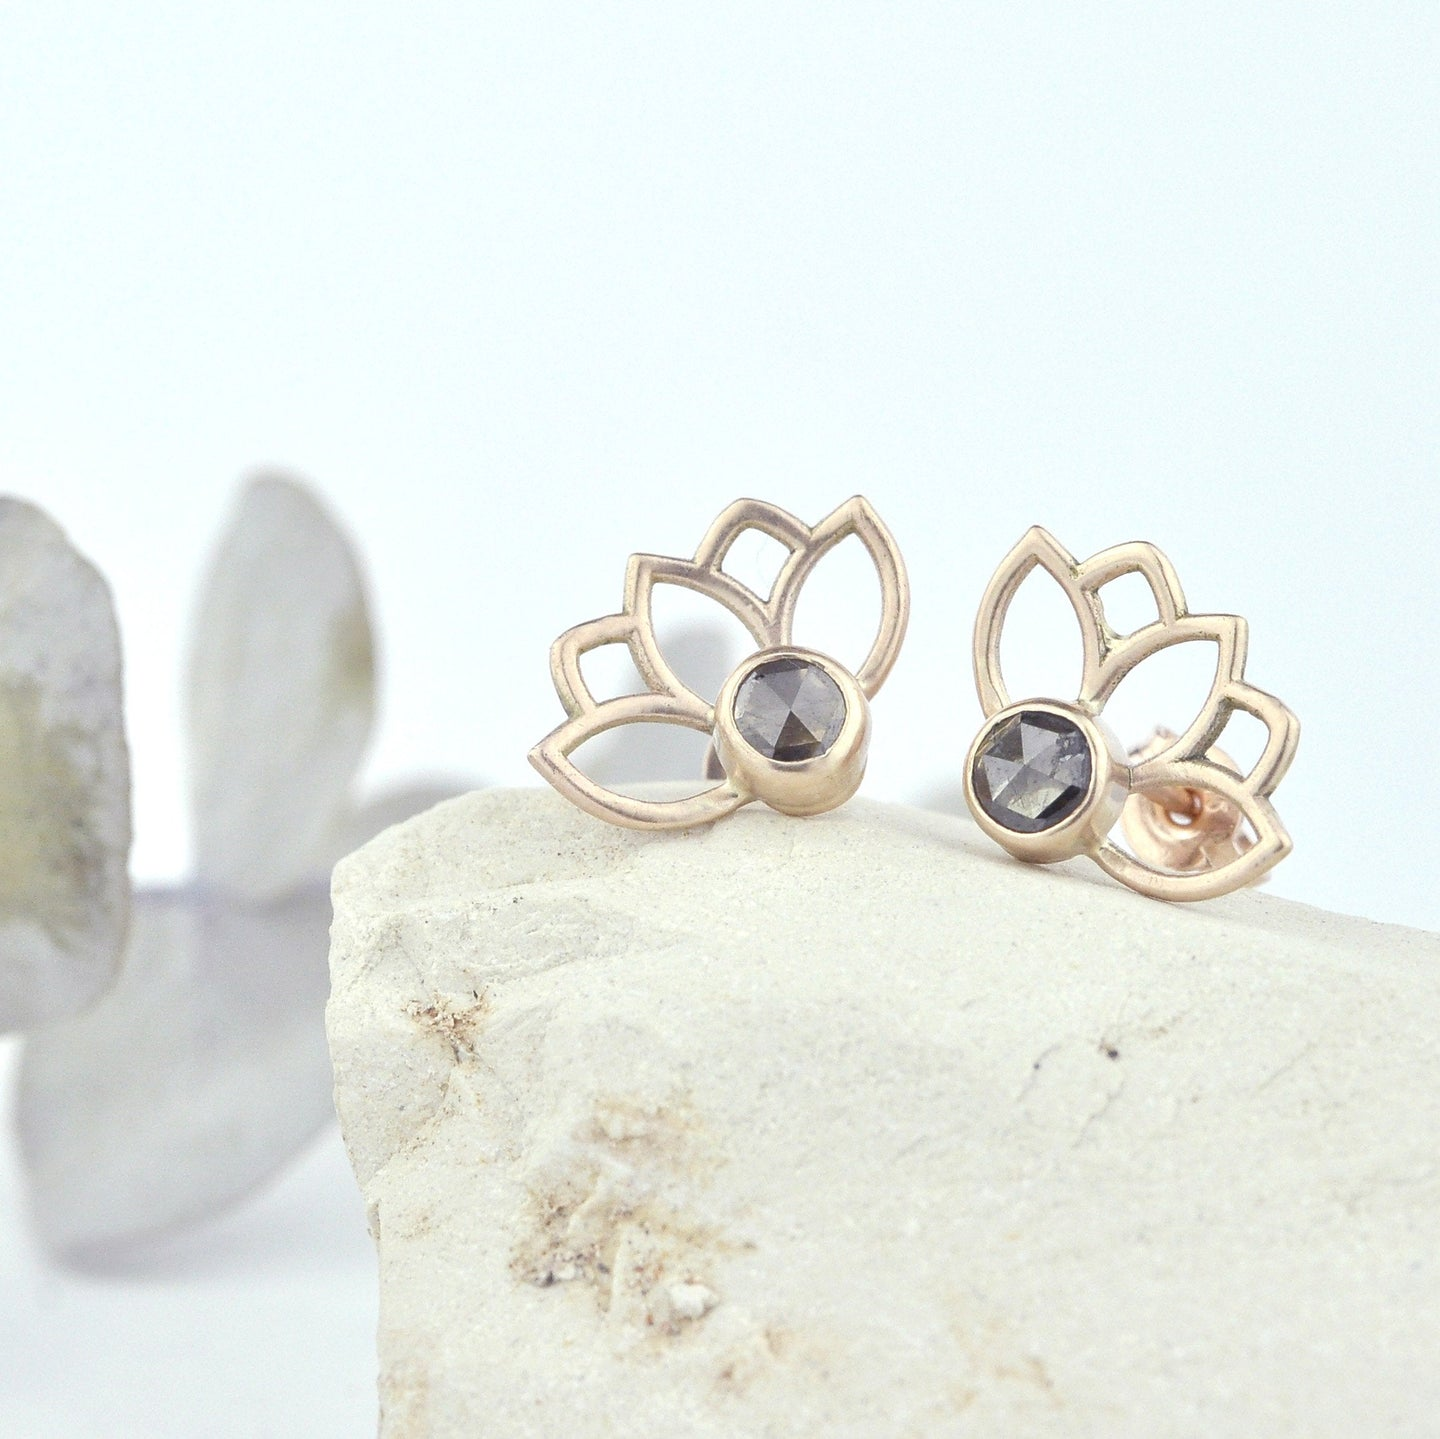 9ct solid rose gold earrings with Rose cut Cognac diamond.